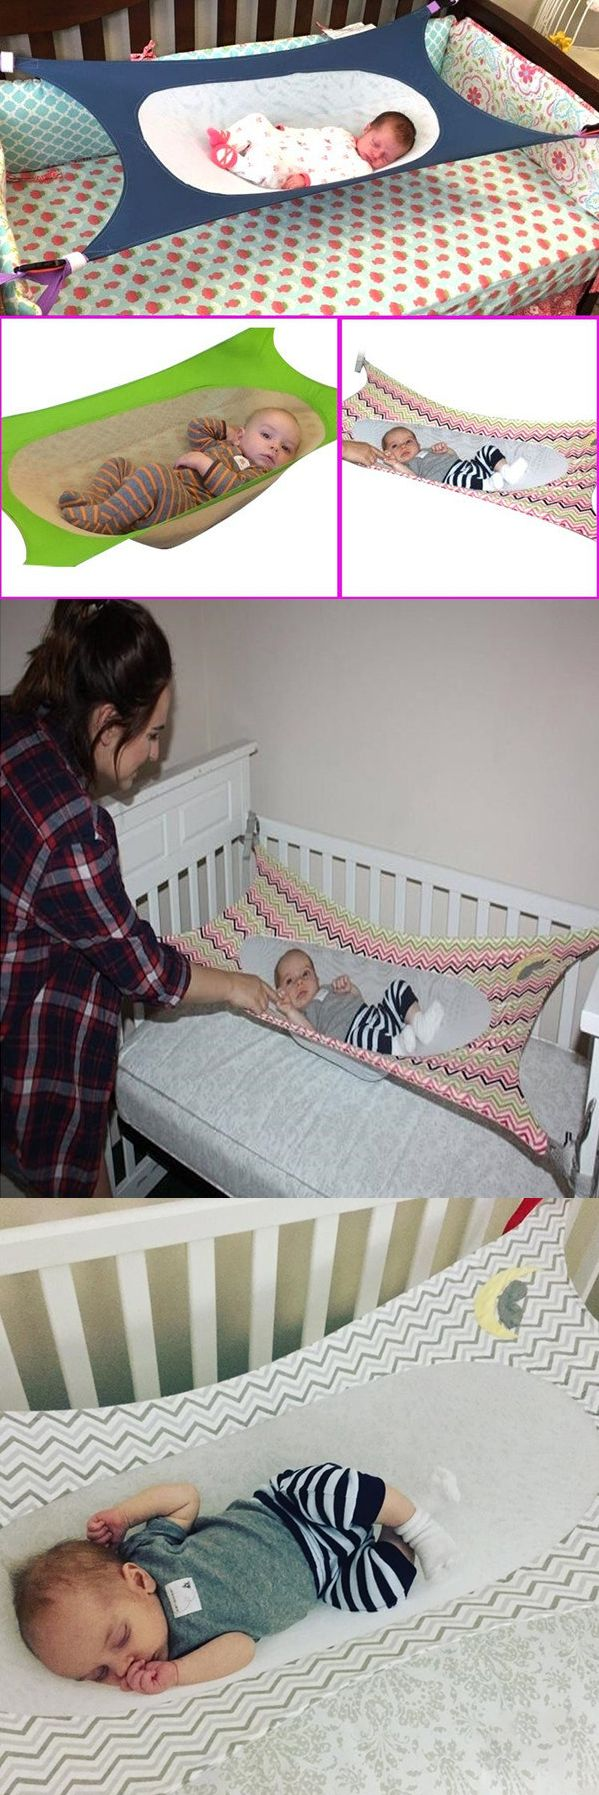 US$19.49 New European Style Baby Crib Hammock Dismountable Portable Infants Cot Bed